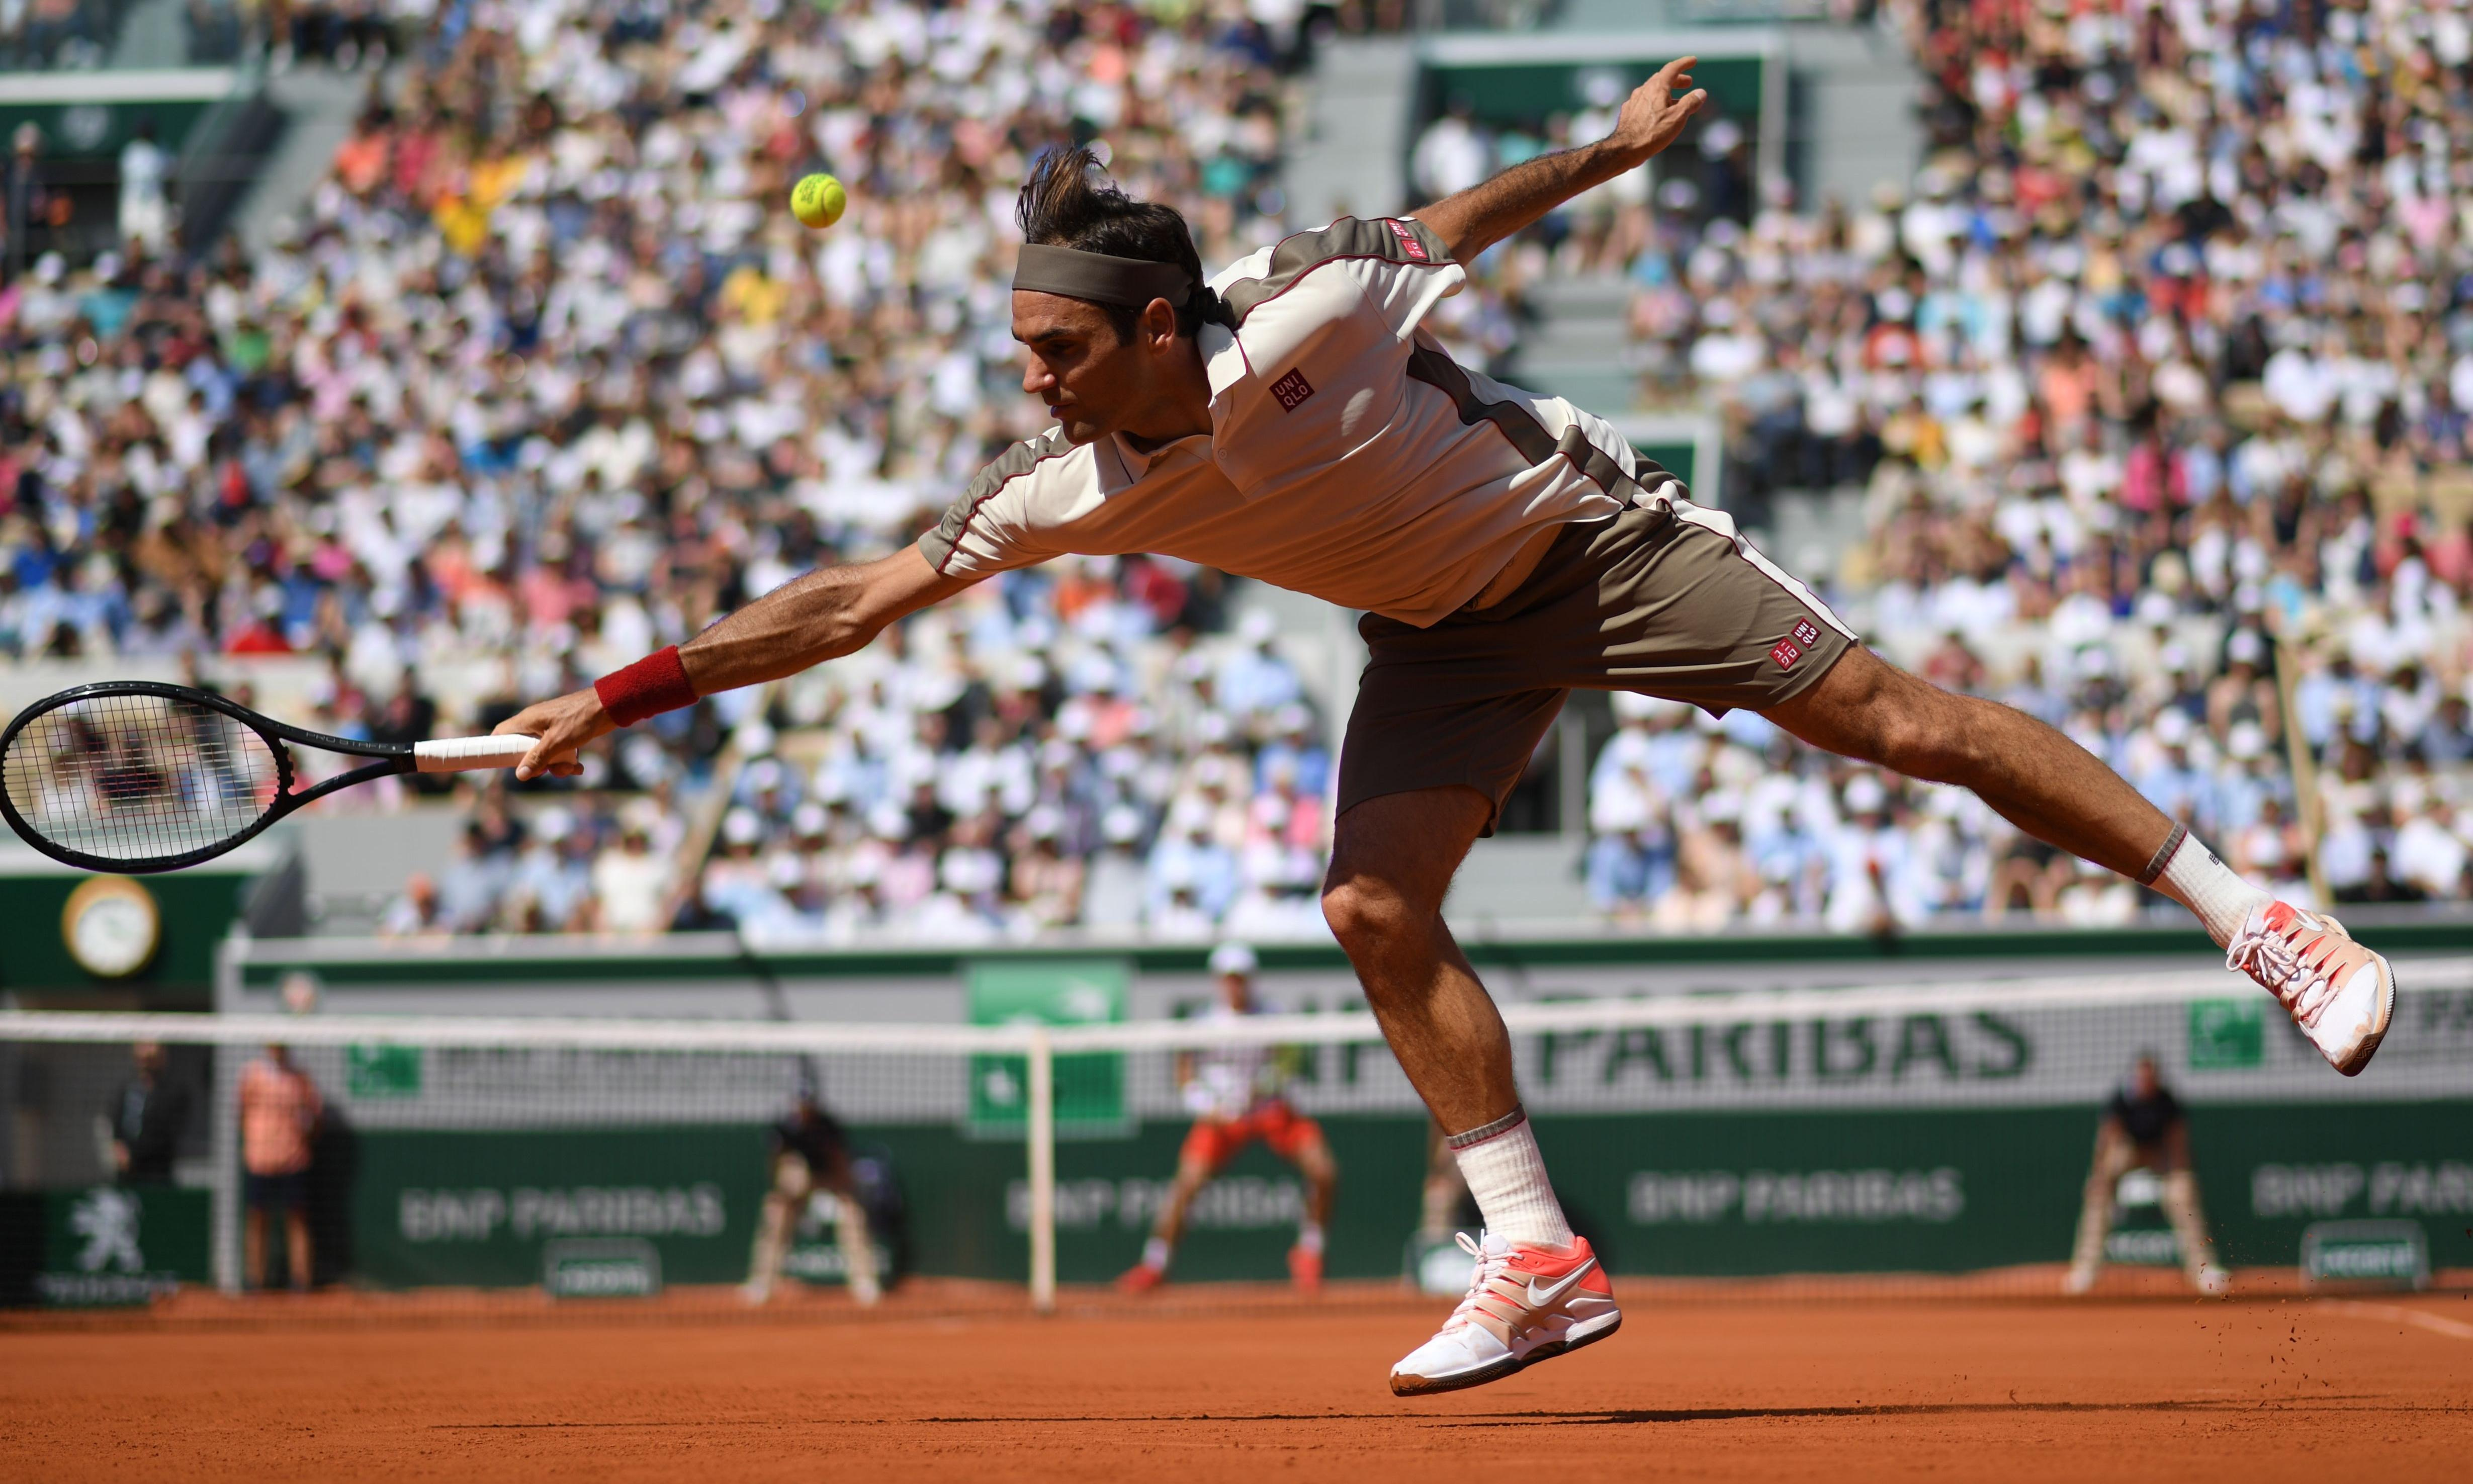 French Open: Roger Federer catches fire while Rafael Nadal survives stutter